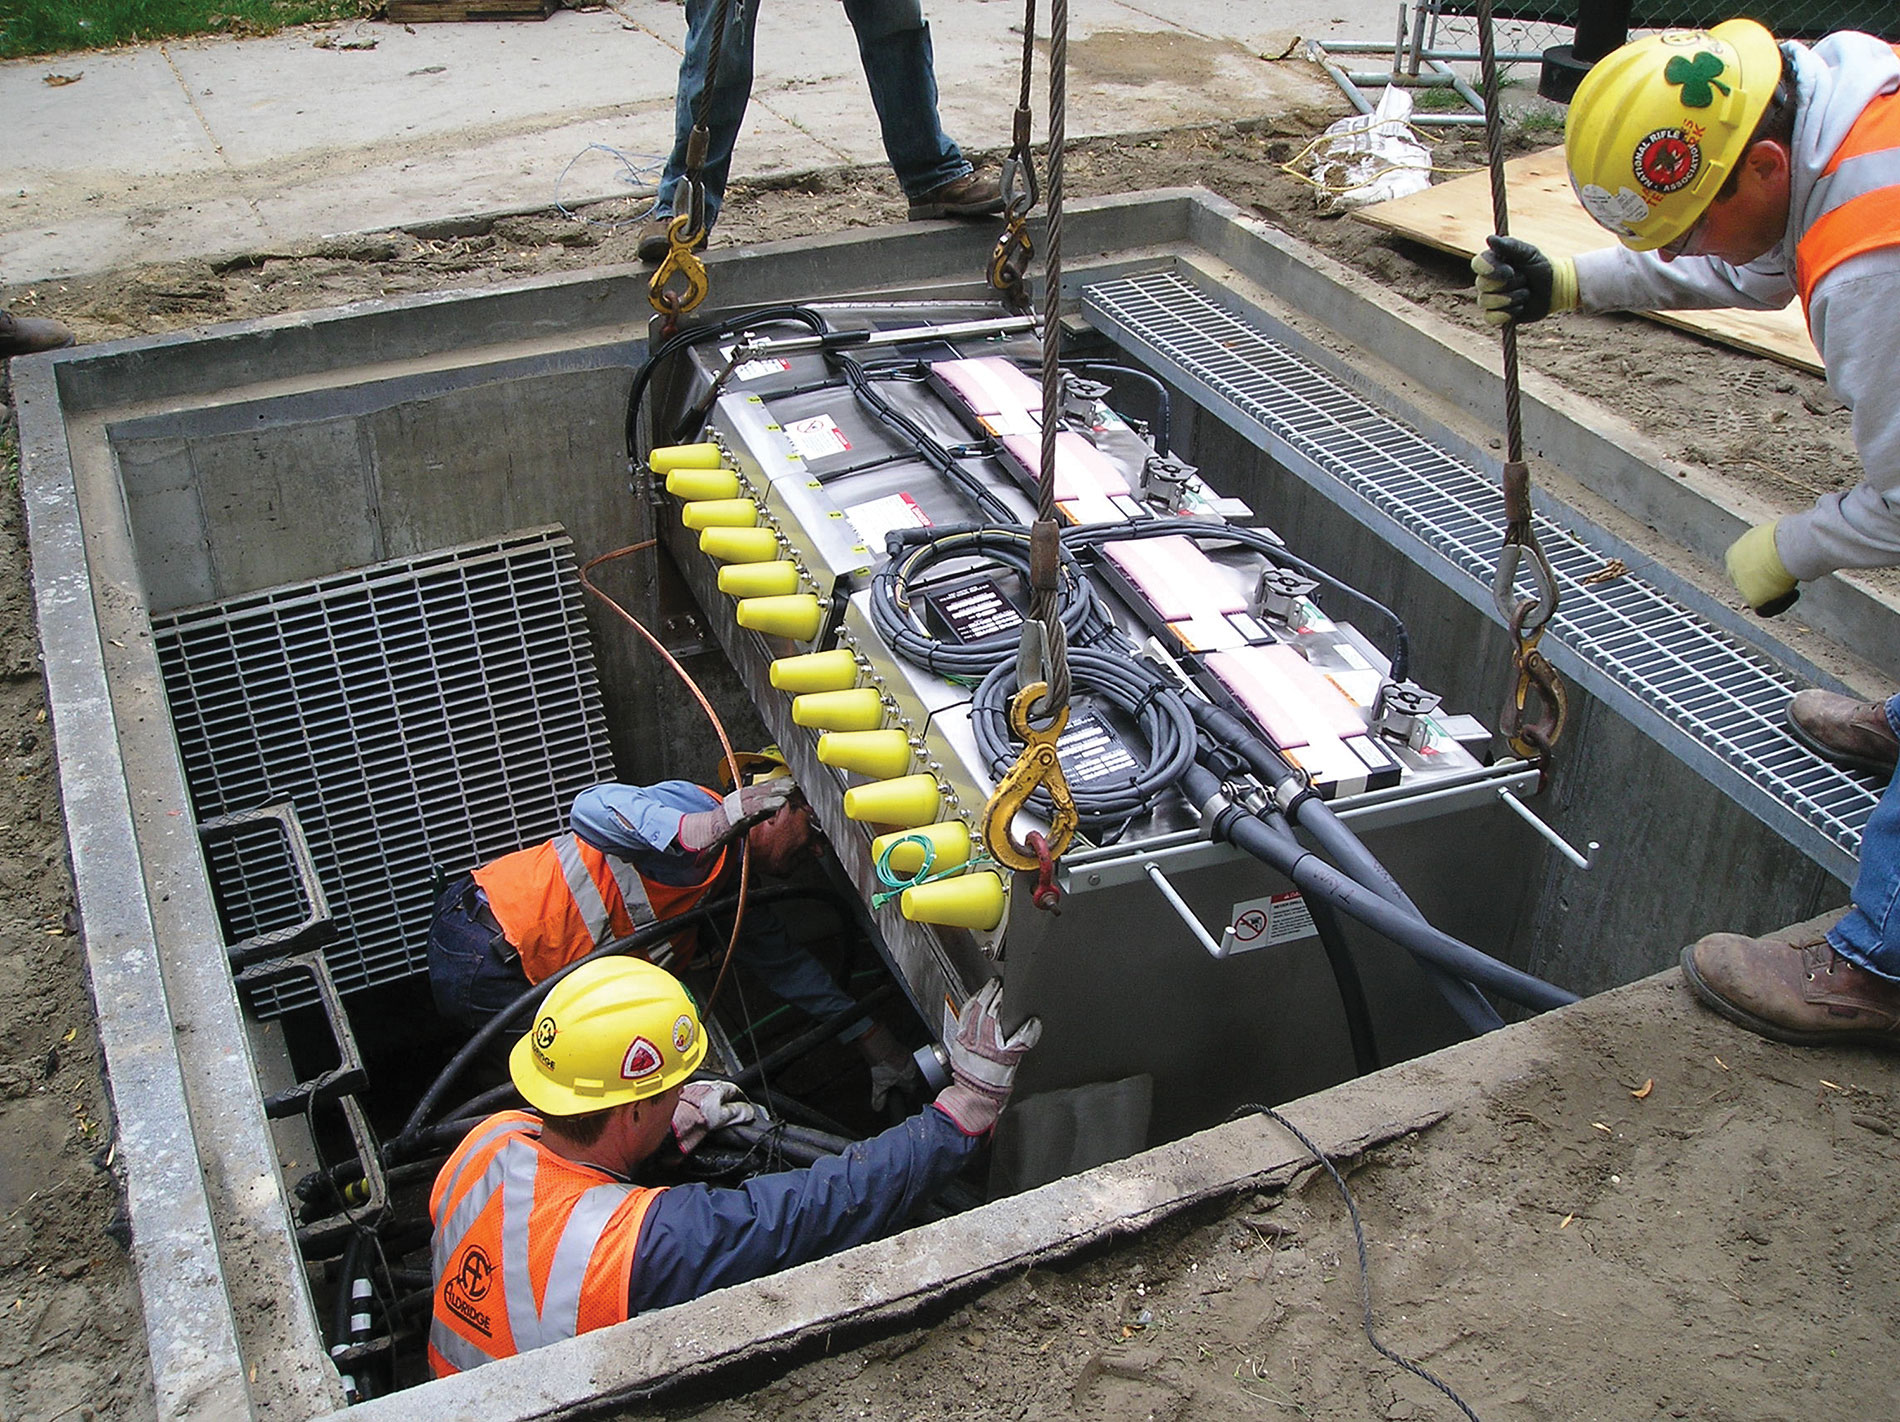 S&C Vista underground distribution switchgear is one operational component of the IIT microgrid. Photo Credit: IIT and ComEd / IIT